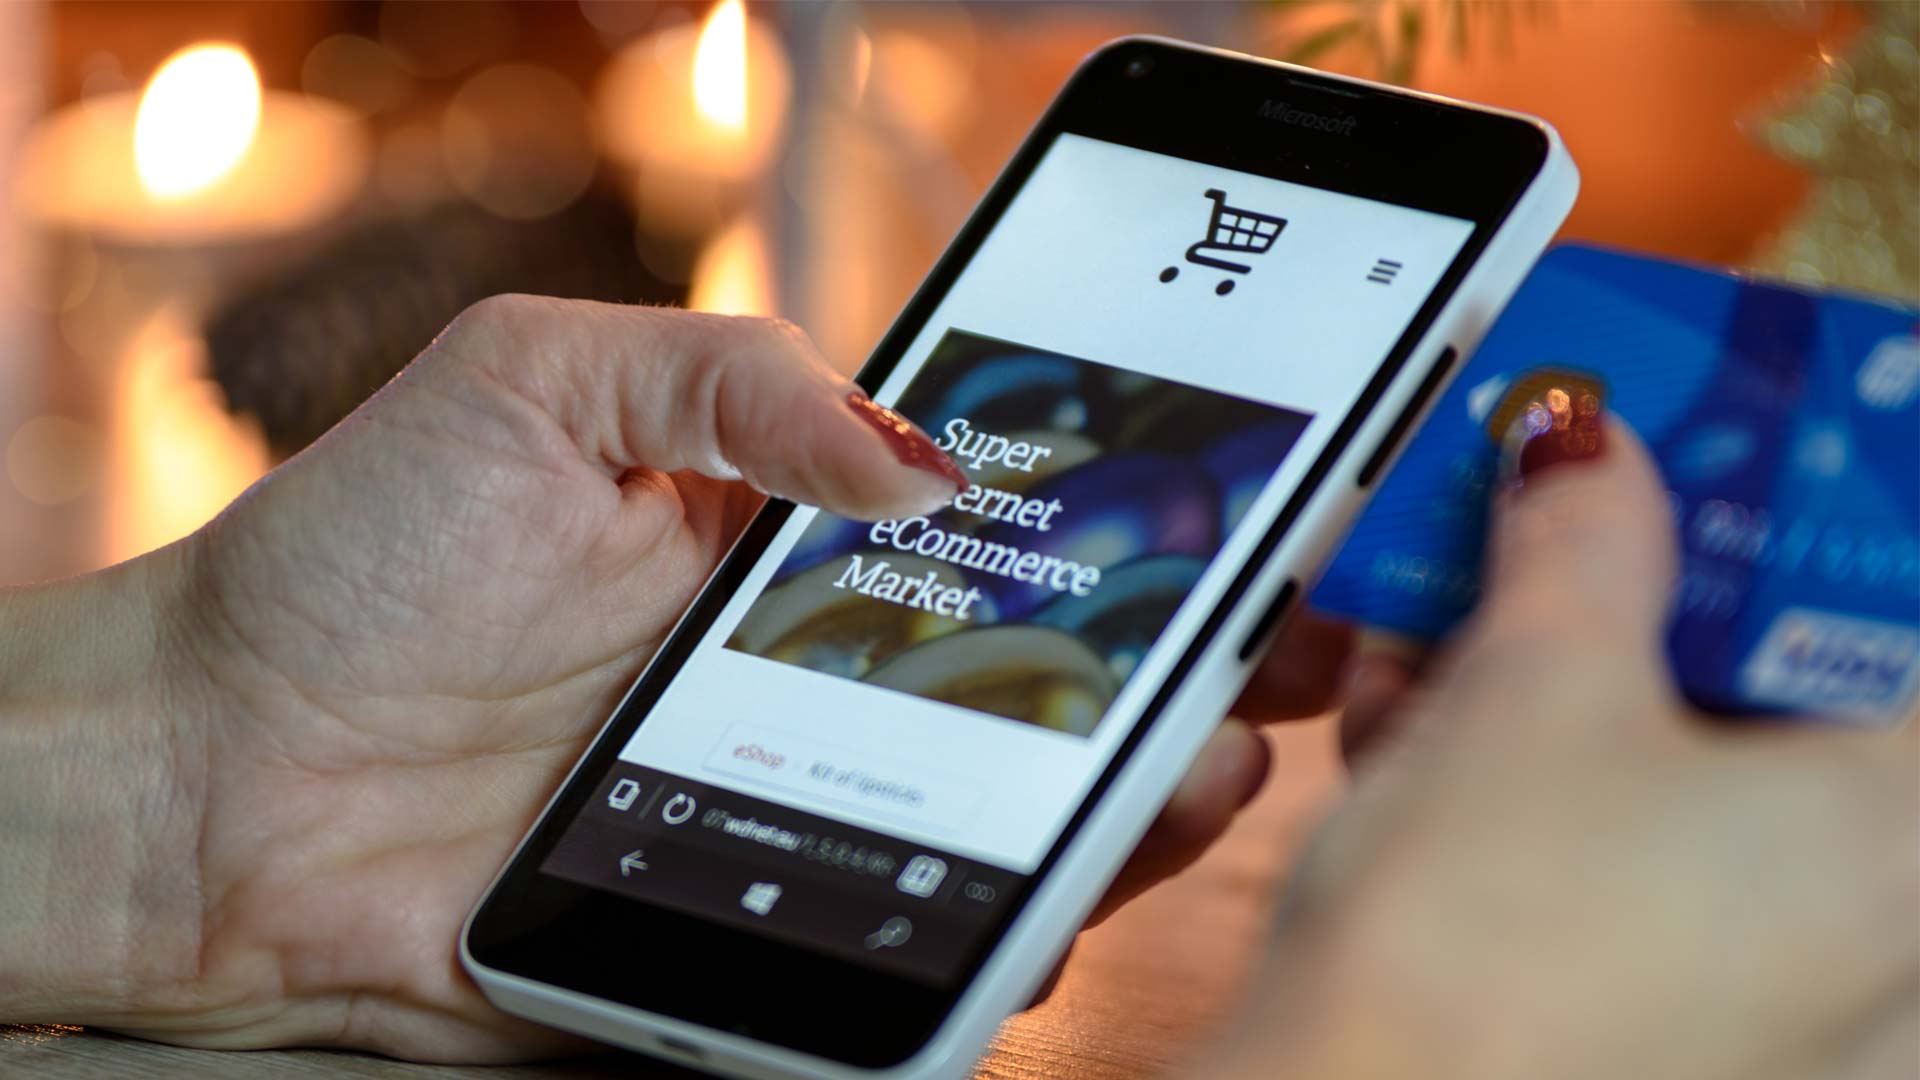 Come incrementare le vendite migliorando la eCommerce user experience